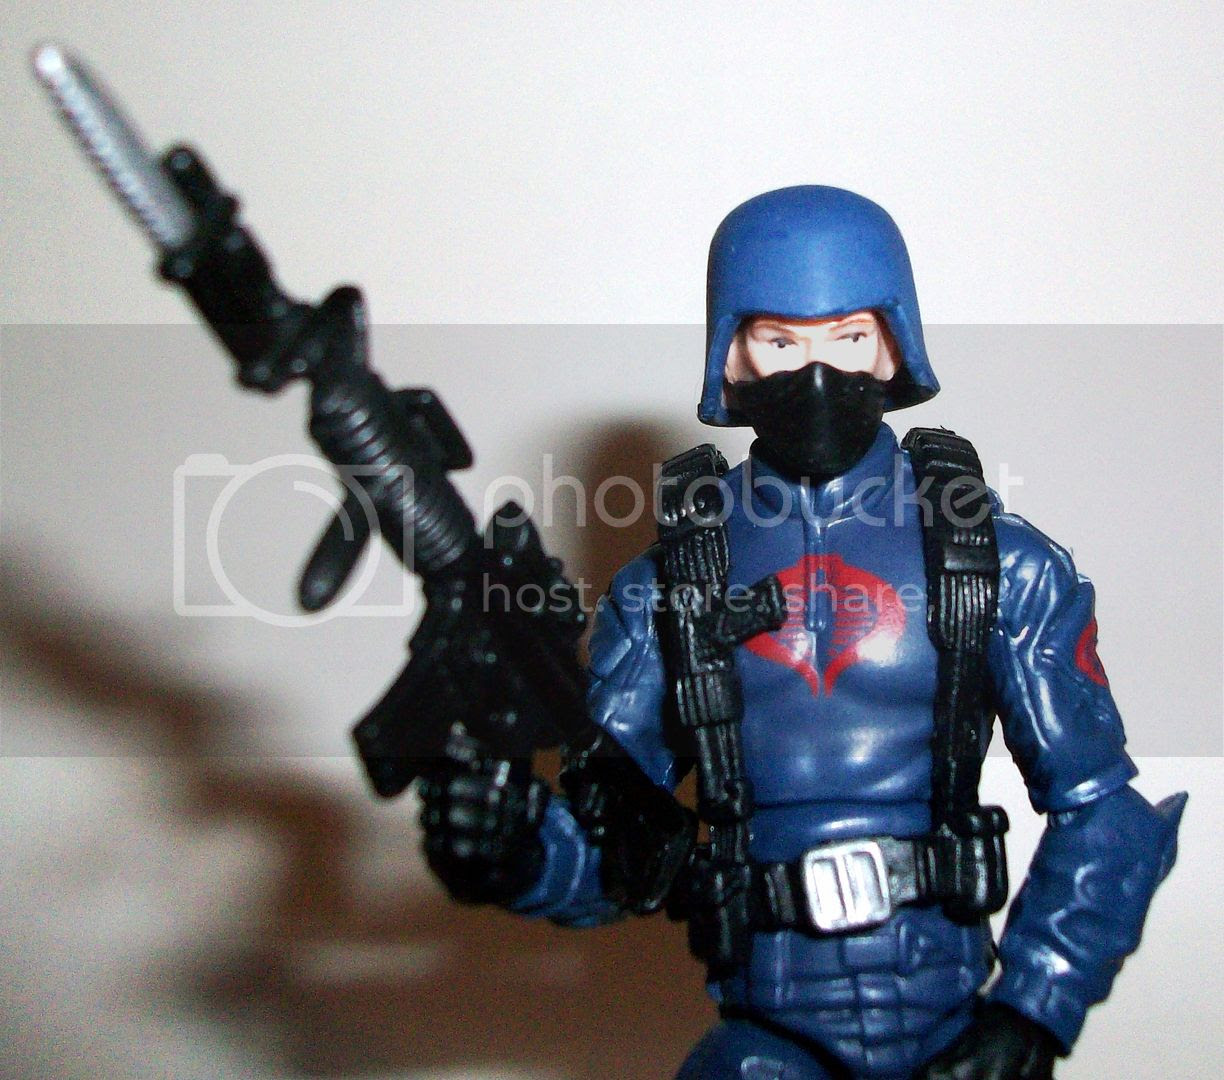 30th Cobra Trooper photo BlogampYoJoe081_zpsc09597b0.jpg